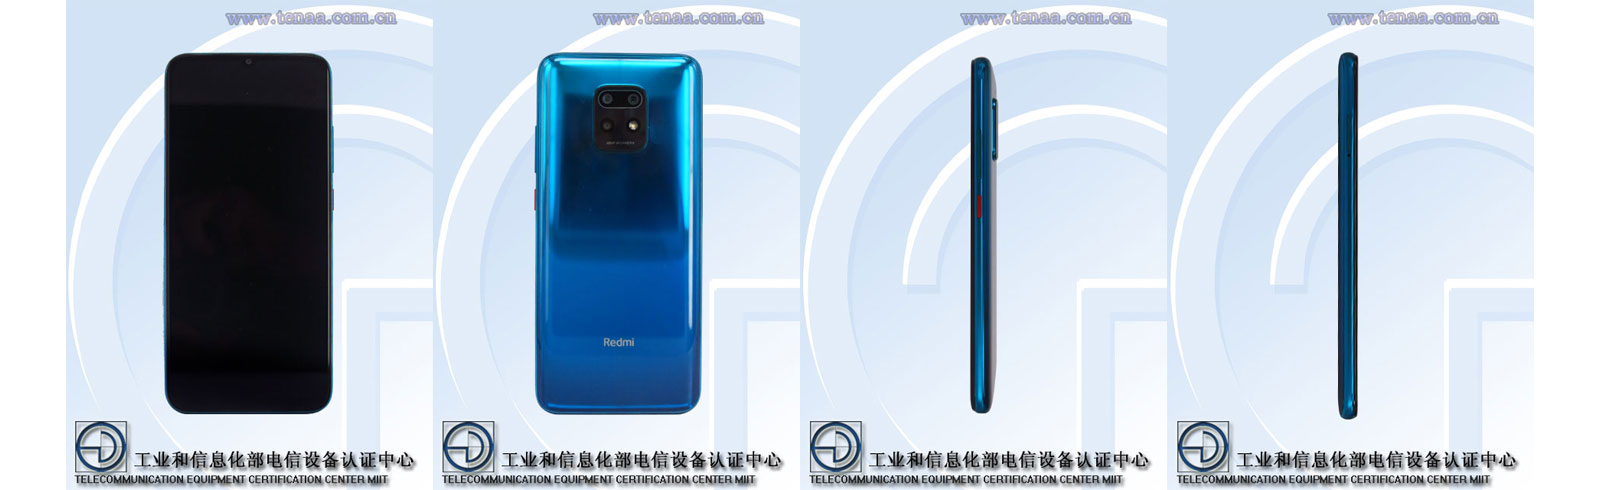 Redmi Note 10 with model code M2004J7AC appeared on TENAA